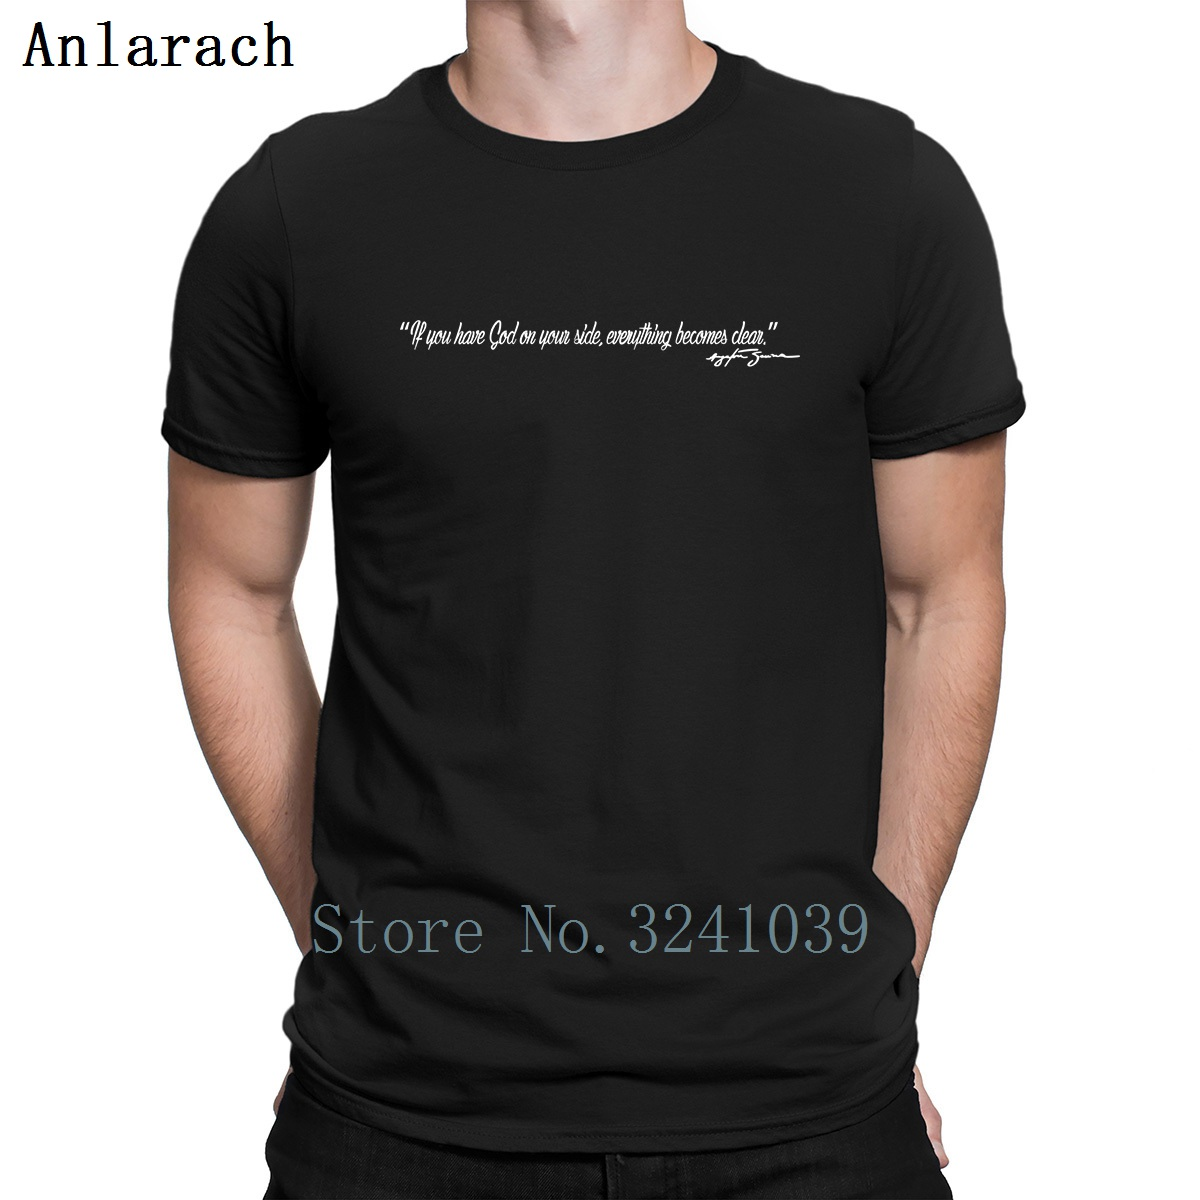 ayrton-font-b-senna-b-font-quote-t-shirt-new-style-summer-leisure-natural-design-size-s-3xl-fitness-tee-shirt-shirt